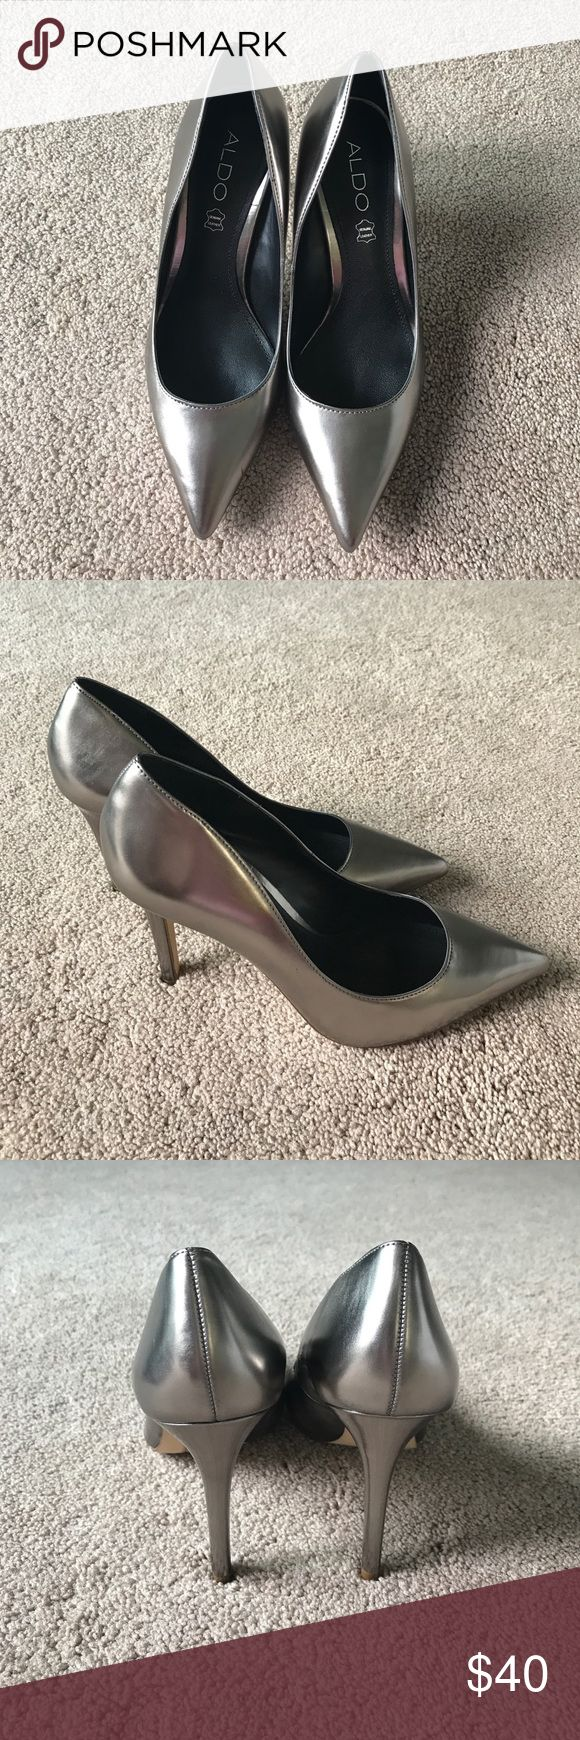 """NWOB Aldo Stessy silver pumps. Closed pointy toe heeled pumps. Heel height 4.25"""". Scratch on right shoe as shown on picture. Aldo Shoes Heels"""